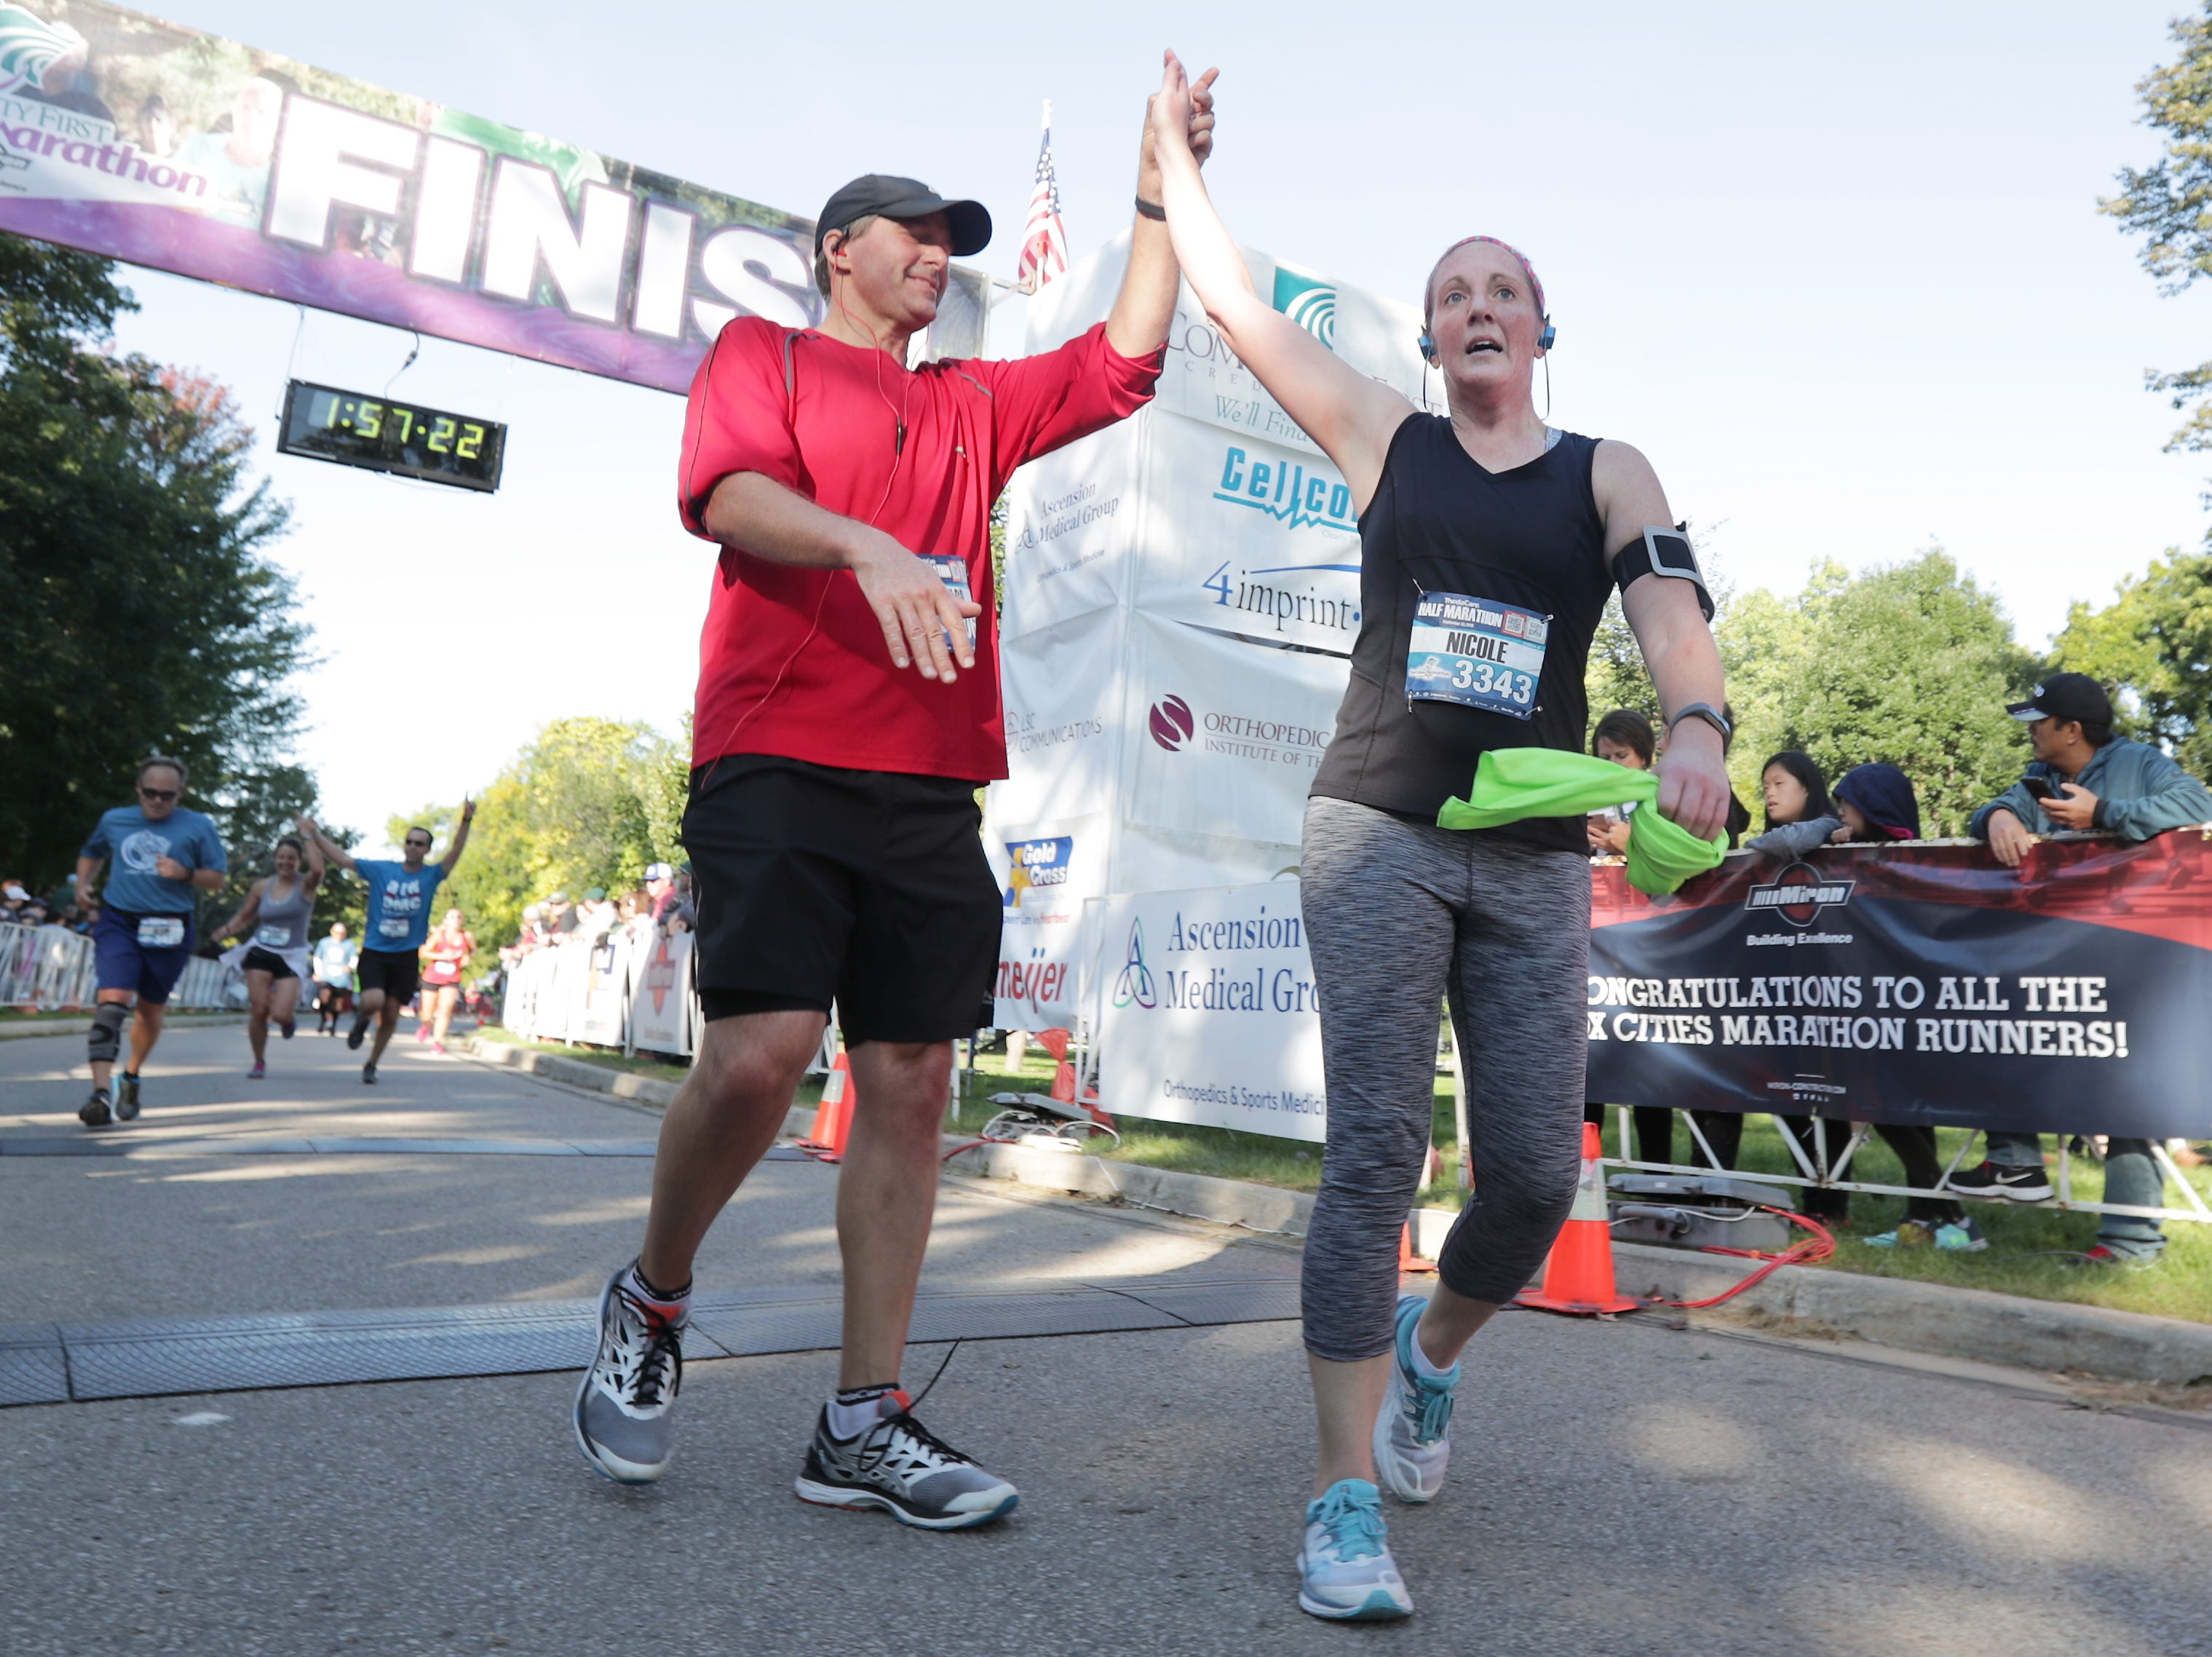 Richard Frost and Nicole Esterling cross the finish line in the half marathon event during the 28th annual Community First Fox Cities Marathon on Sunday, September 23, 2018, in Neenah Wis. 